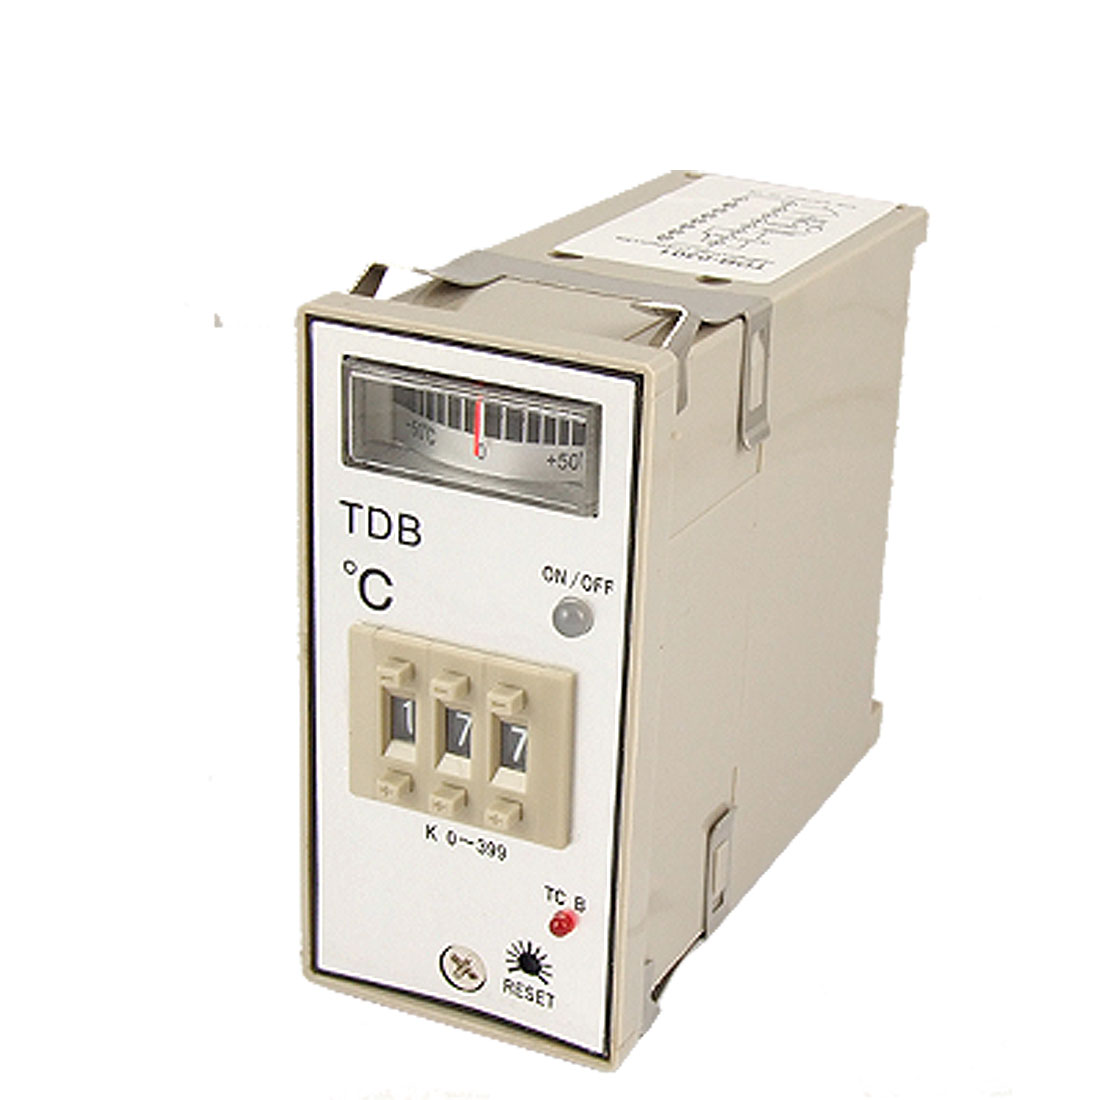 TDB-0301 Encoded Setting Deviation Indication Temperature Controller